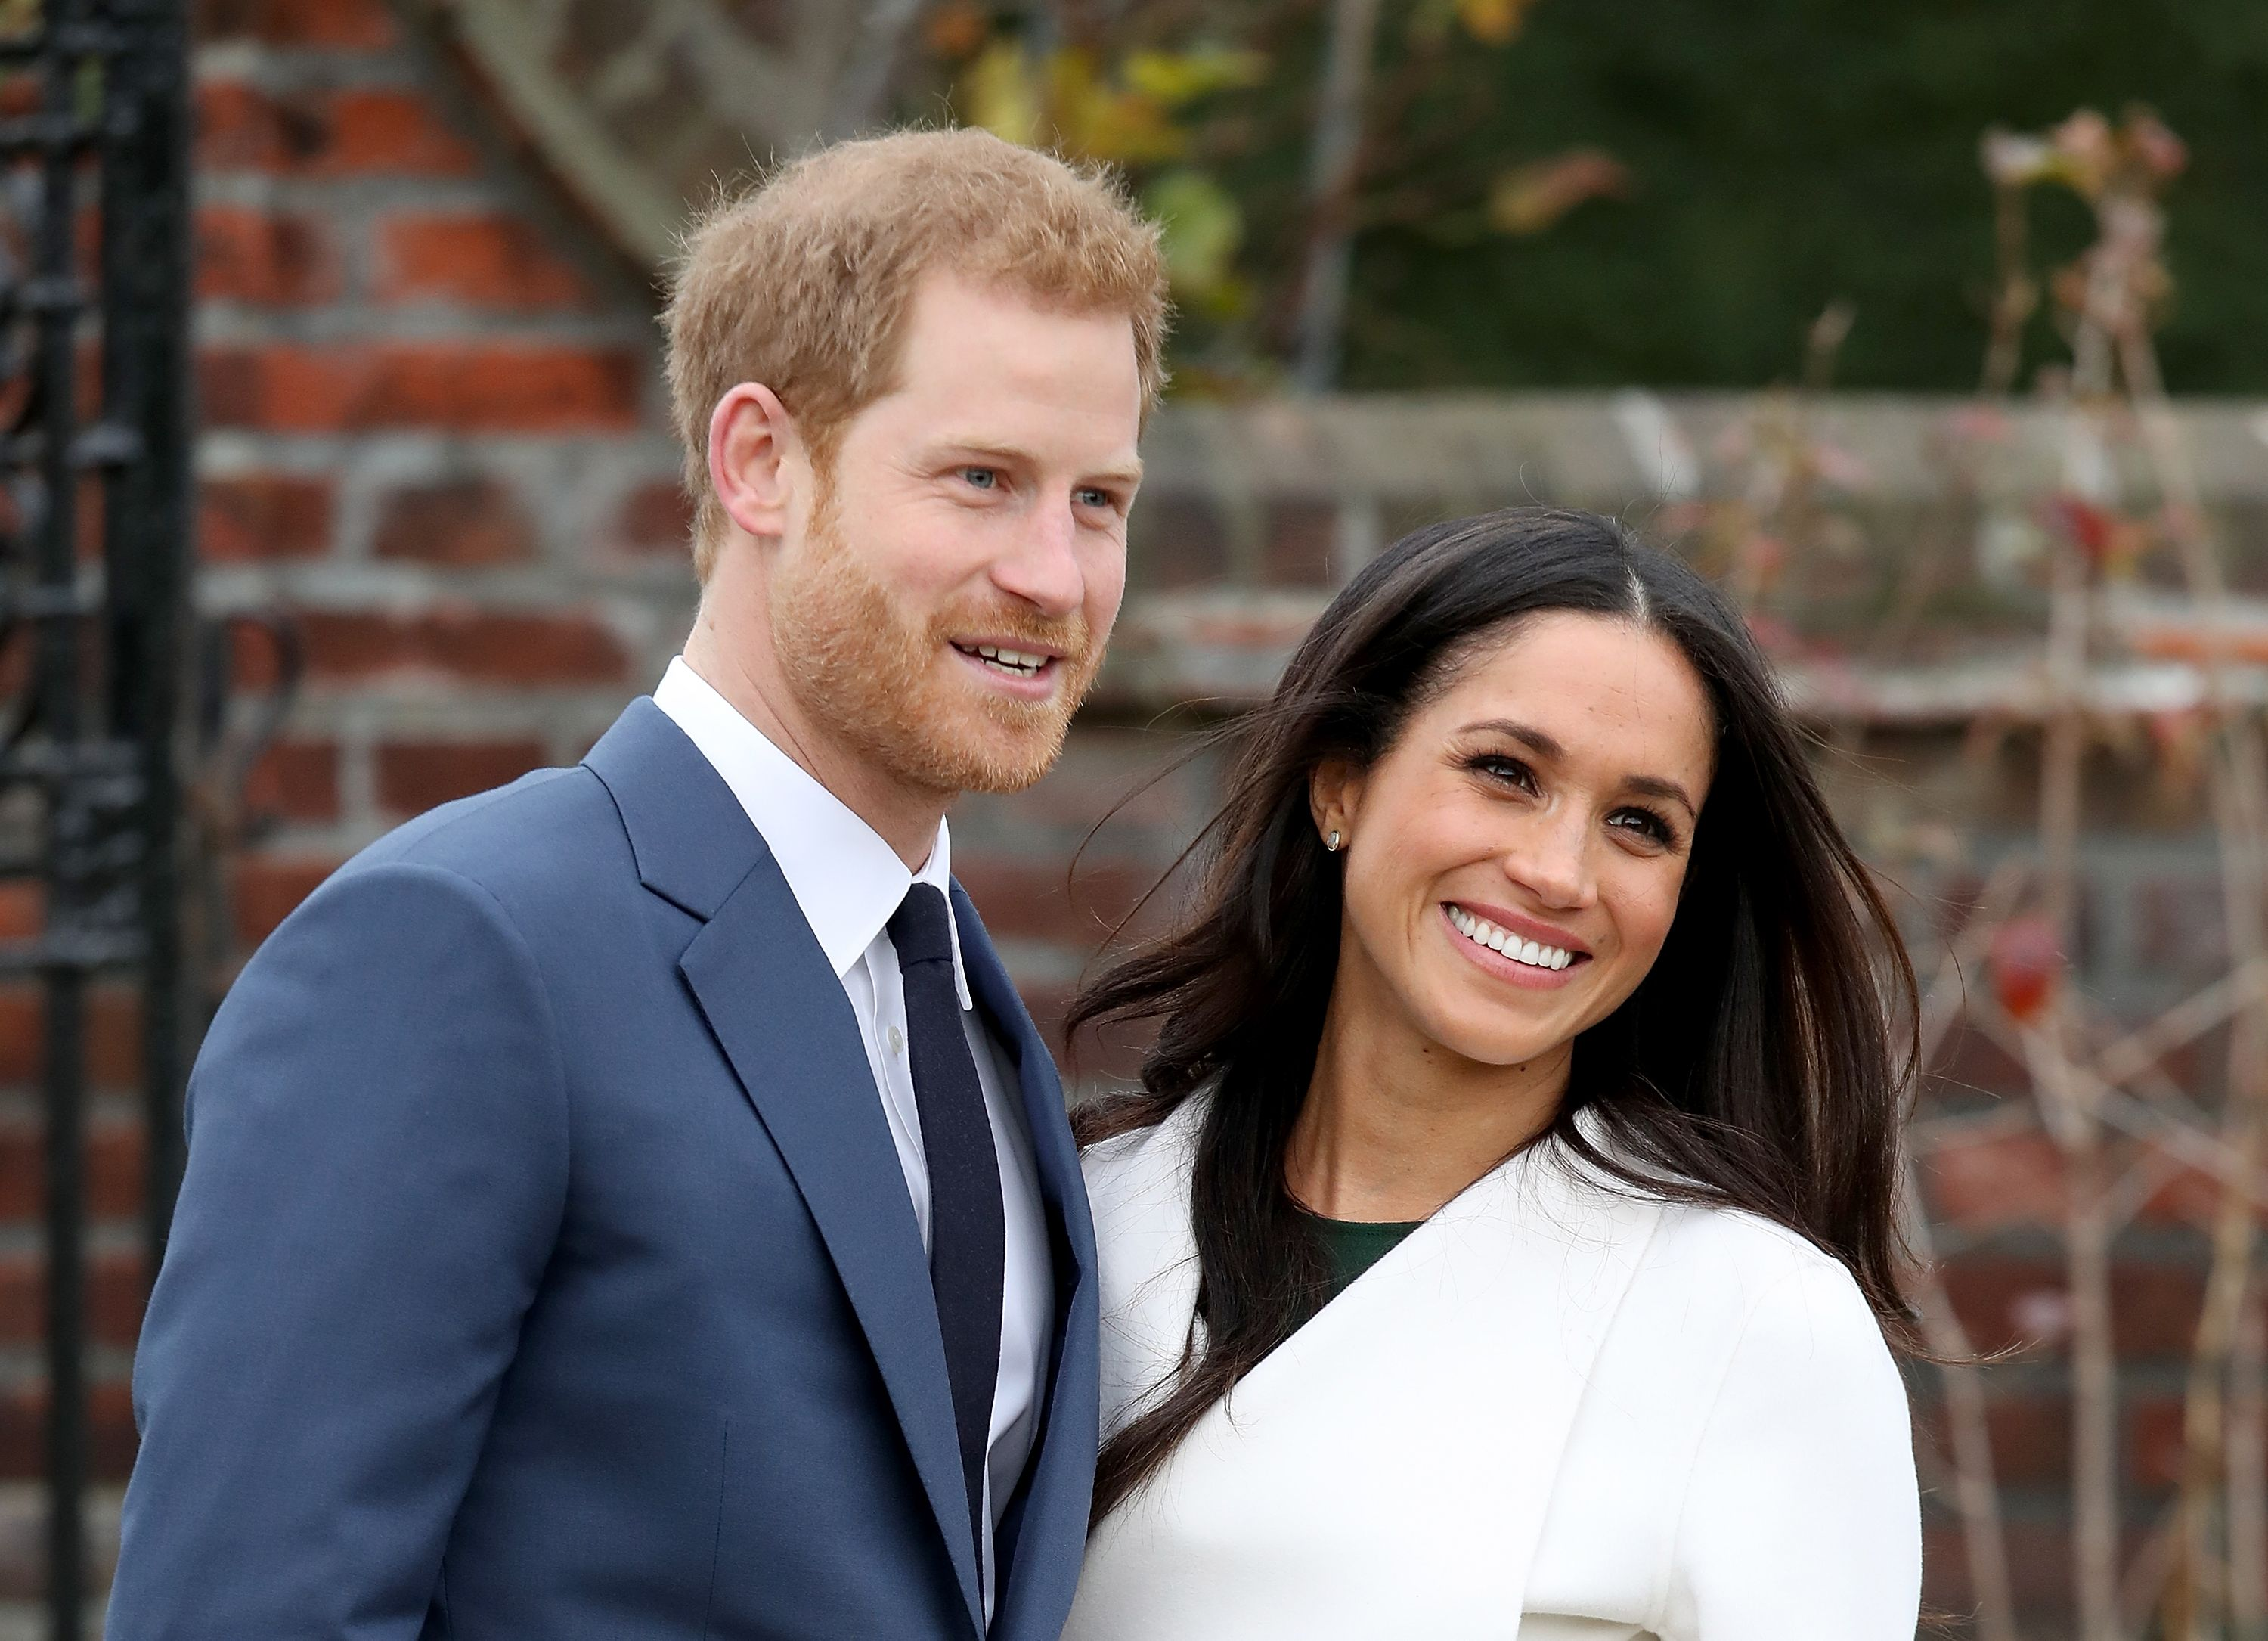 Prince Harry and Meghan Markle at an official photocall to announce their engagement at Kensington Palace on November 27, 2017 | Photo: Getty Images